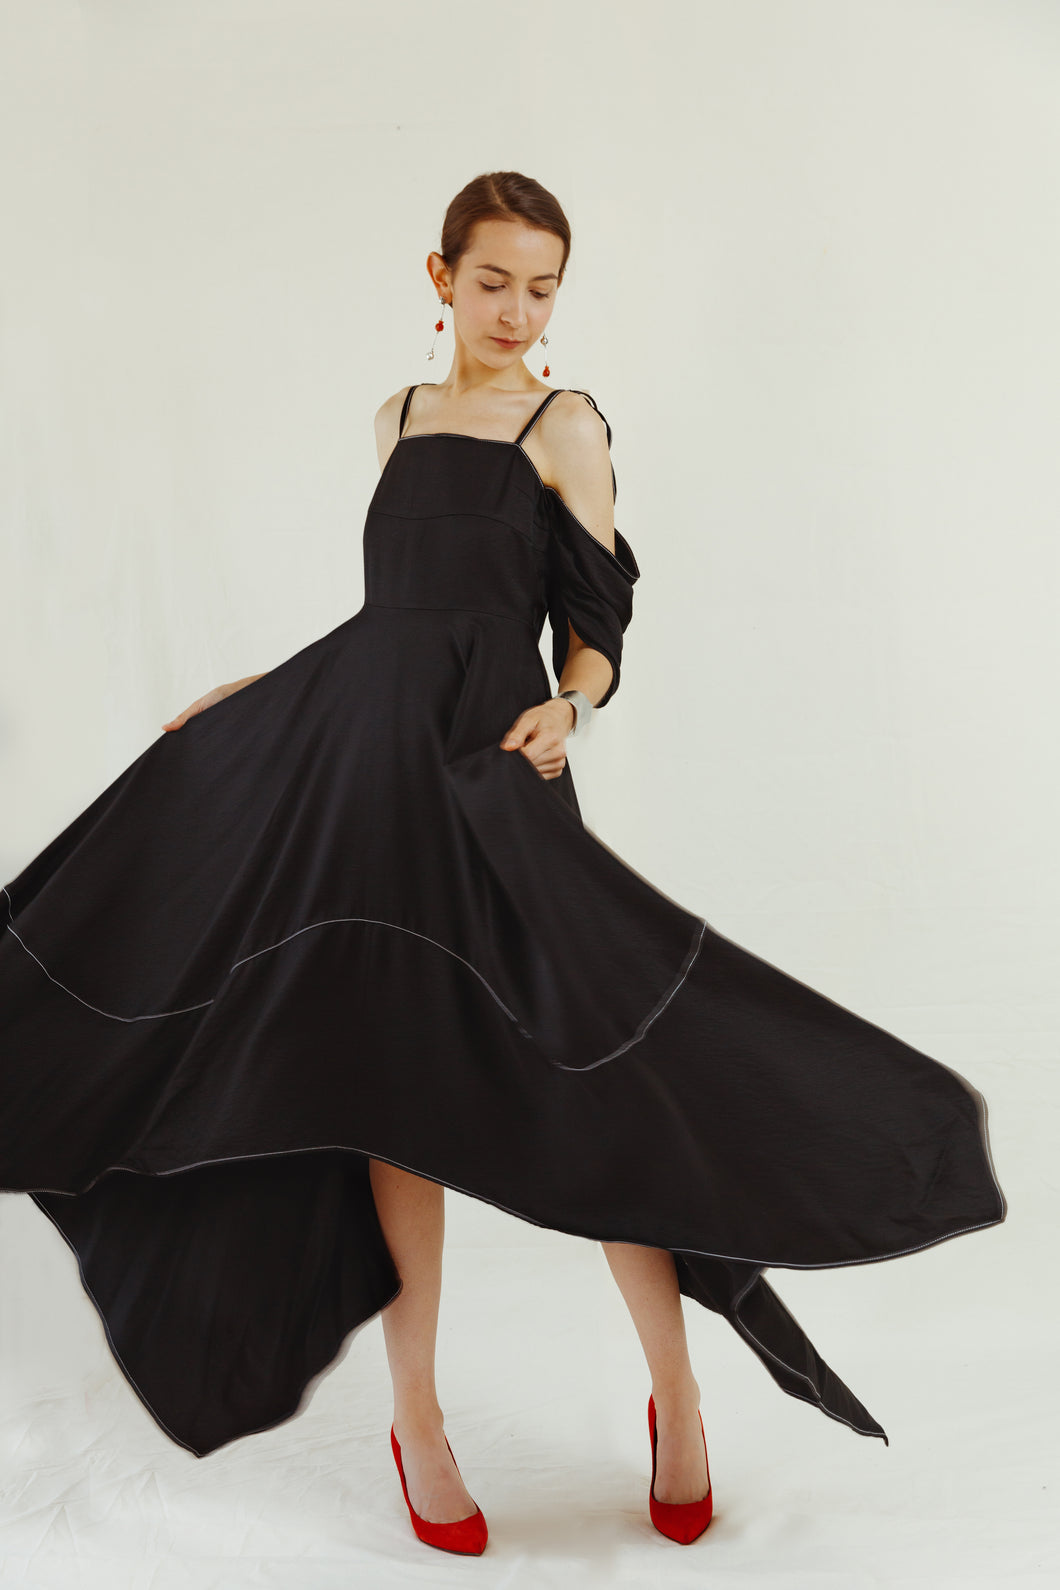 REJINA PYO: 'Audrey' Dress